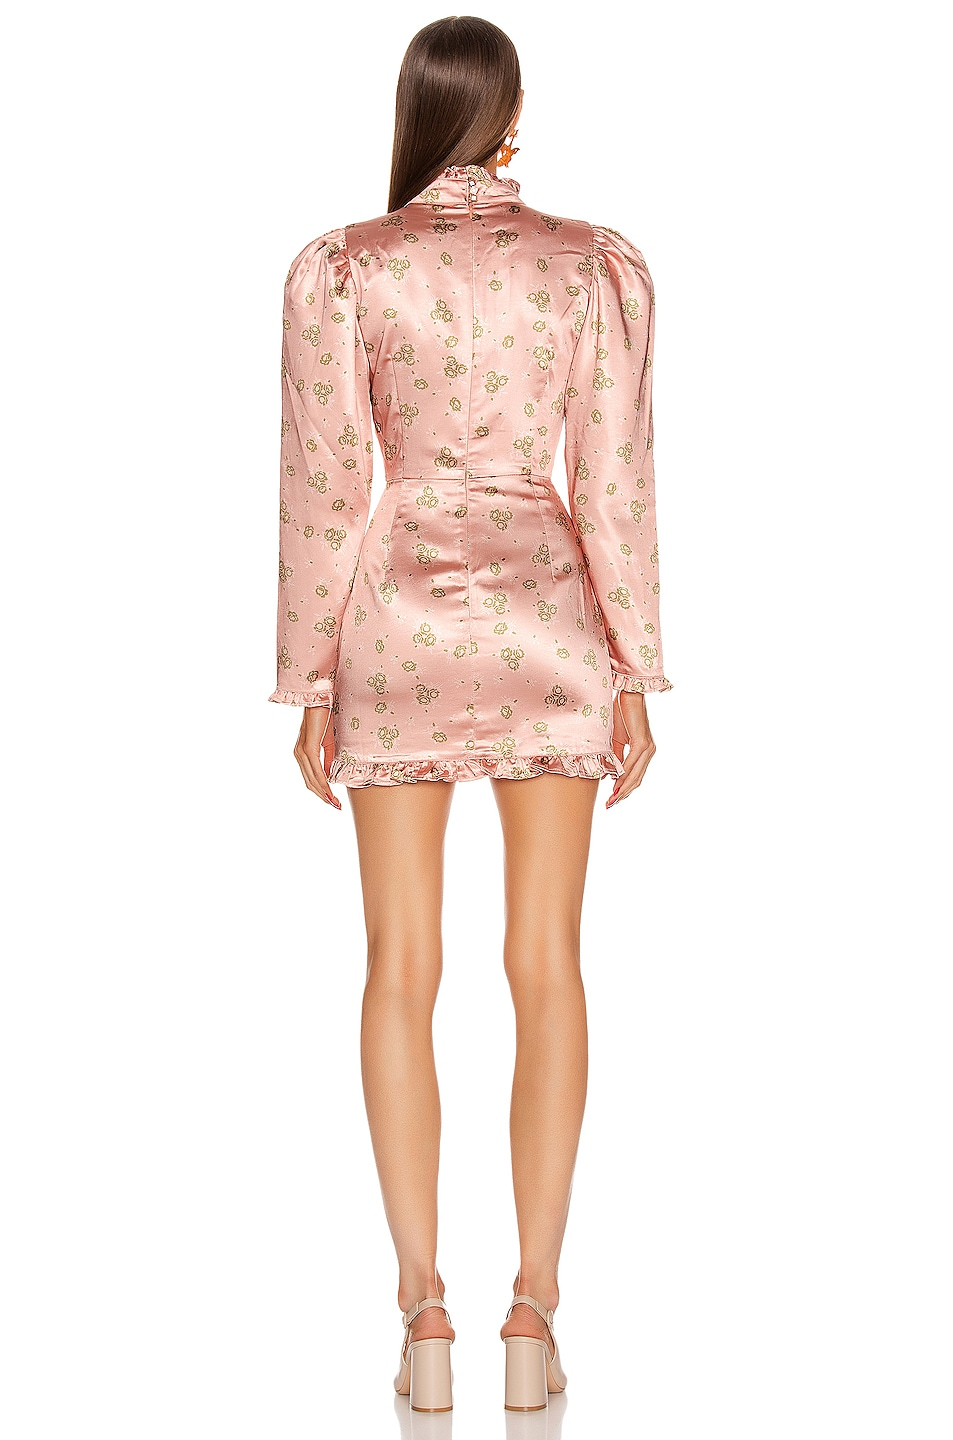 Image 3 of Atoir What's On Your Mind Dress in Peach Botanical